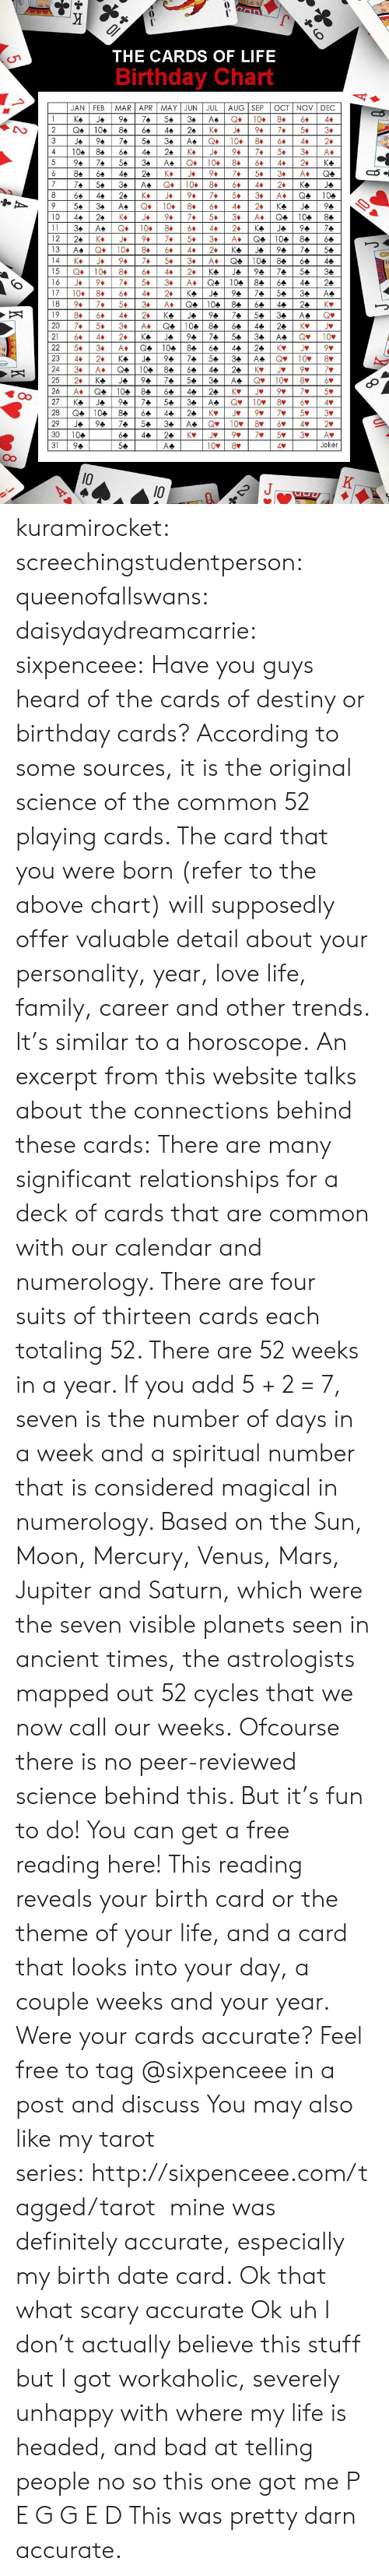 Bad, Birthday, and Definitely: THE CARDS OF LIFE  Birthday  Chart  JAN FEB  MAR APR MAY JUN JUL  AUG SEP  A  OCT NOV DEC  Q  Ка  JA  94  74  54  34  10.  8+  4+  2  104  84  64  24  К-  J*  94  7+  3+  44  3  JA  94  74  54  34  A4  Q+  10.  84  4¢  24  4.  104  84  64  44  24  Ke  J+  94  7+  5+  3+  A*  Q  10  5  94  74  54  84  2+  КФ  AA  44  8  6  24  К»  J+  94  7+  5+  3+  A*  QA  44  10  7  74  54  За  AA  8+  44  2+  Ка  JA  8  64  24  КА  J*  9+  7+  5+  3+  A*  Q4  104  44  A  54  34  Q  10.  8+  24  Ка  4*  JA  A  10  24  K*  J+  9+  7+  5+  3+  Q  104  8+  44  11  34  Q  10+  8+  2+  Ка  94  74  Aa  4+  JA  12  24  K*  94  7+  5+  3+  A*  Q4  104  84  13  8+  AA  Q+  10+  4*  2*  Ка  JA  94  74  54  14  K*  J+  9+  5+  3+  A.  Q&  104  84  64  44  15  Q+  10+  8+  94  54  ЗФ  4*  2+  Ка  JA  16  J+  9+  7+  5+  3+  A*  QA  104  84  64  24  44  17  10+  8+  4*  2+  КФ  JA  94  74  54  3Ф  A4  18  9+  7+  5+  30  Q&  104  8+  24  КУ  A*  64  44  19  8+  6+  44  Ка  94  74  54  З4  A*  Qv  20  7+  5+  3¢  Q+  104  84  24  КУ  A*  44  Jv  A  K  A  21  2+  Ка  JA  94  74  54  За  Qv  10-  4*  22  5+  3+  Q4  104  8  24  A*  64  44  23  2+  Ка  JA  94  74  54  Зф  Qv  10v  44  7  24  9  3+  A.  Q  104  84  64  44  24  KV  Jv  10  25  24  Ка  94  74  54  За  Qv  8V  JA  A4  K  26  Q  104  84  24  A*  64  44  5  27  4  KA  JA  94  74  34  A4  Qv  10  8v  28  104  84  24  Kv  5v  3D  A  29  94  74  54  3Ф  10v  Qv  4v  30  104  44  24  Kv  J  7v  3%  AV  Joker  31  94  54  10%  8V  Aa  10  K  10  24  - kuramirocket: screechingstudentperson:   queenofallswans:  daisydaydreamcarrie:  sixpenceee:   Have you guys heard of the cards of destiny or birthday cards? According to some sources, it  is the original science of the common 52 playing cards. The card that you were born (refer to the above chart) will supposedly offer valuable detail about your personality, year, love life, family, career and other trends. It's similar to a horoscope. An excerpt from this websit